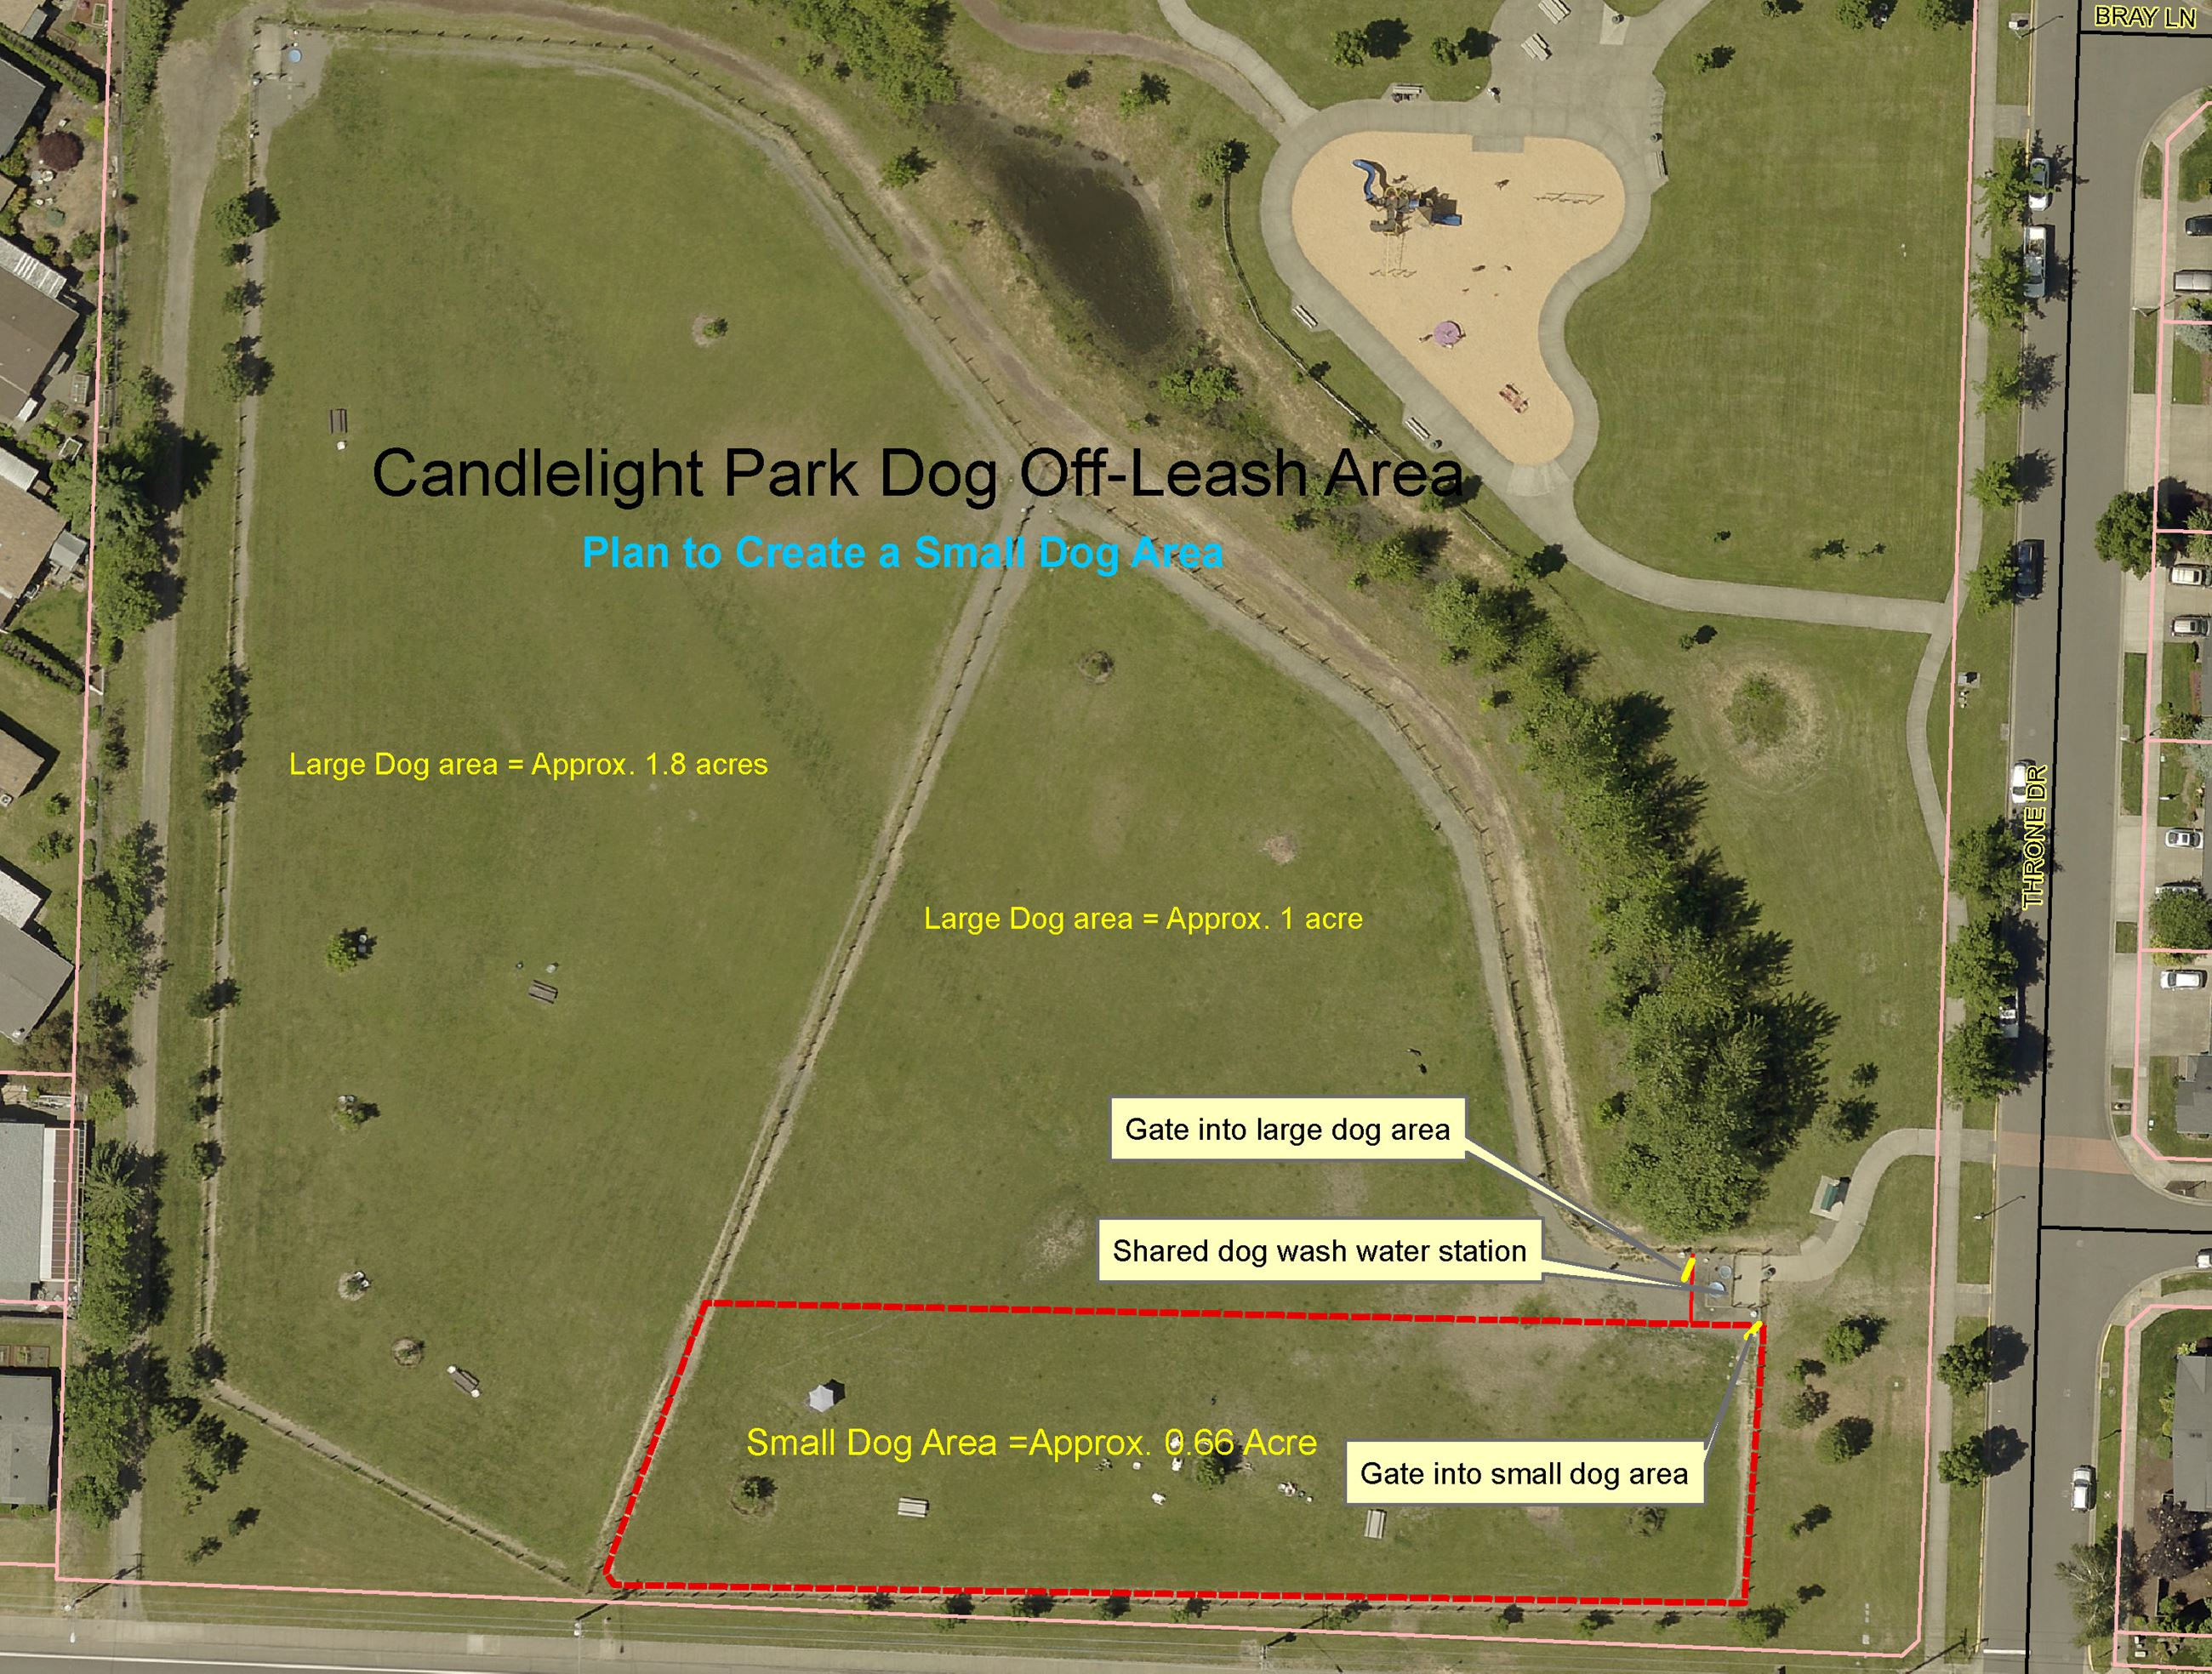 Map of Candlelight Dog Park with new small dog area